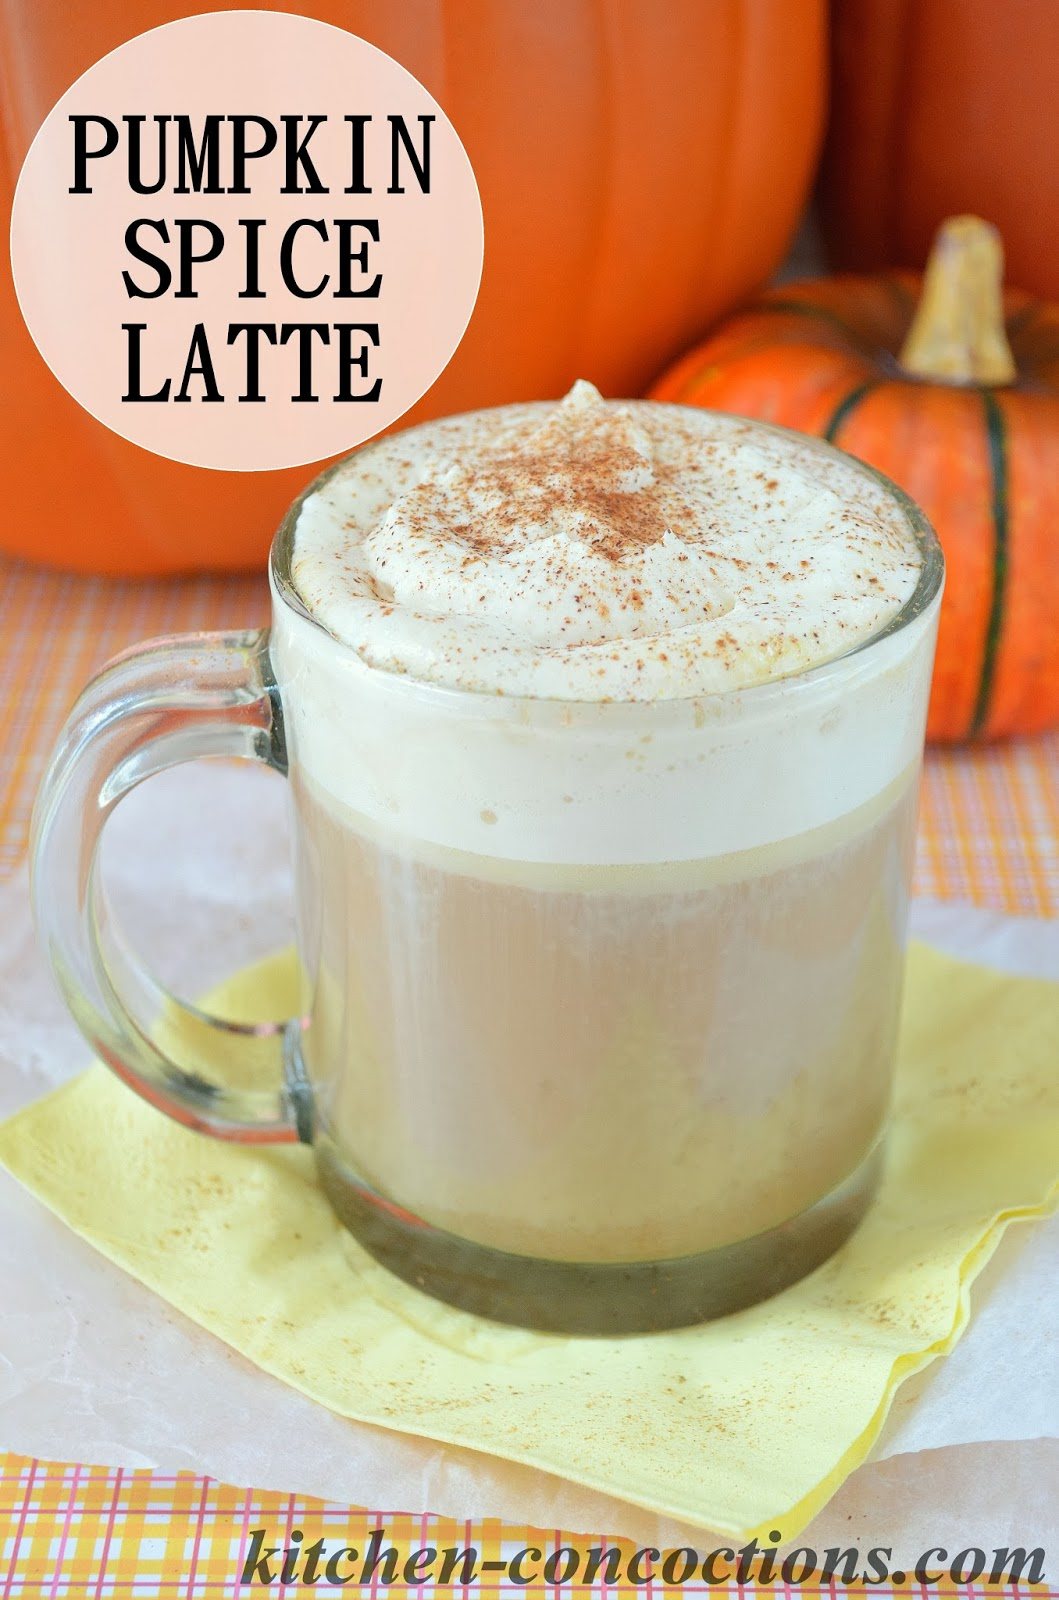 Pumpkin Spice Latte - Kitchen Concoctions